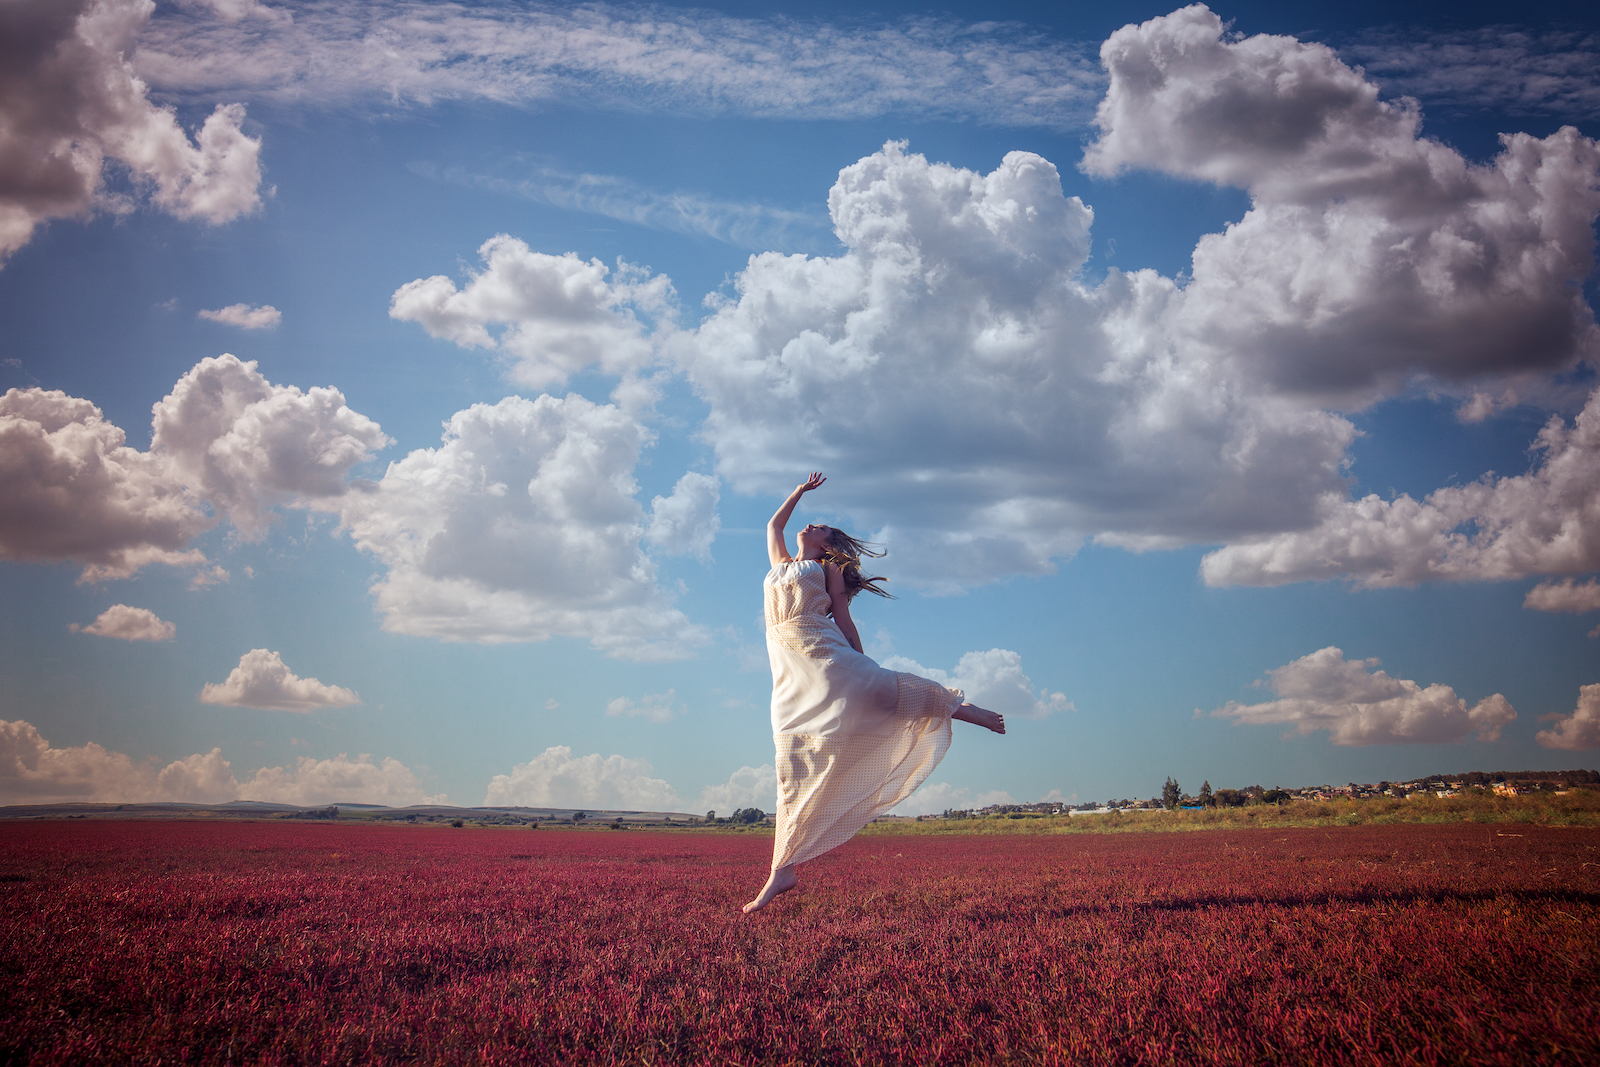 Mindfulness Woman Jump in the Sky